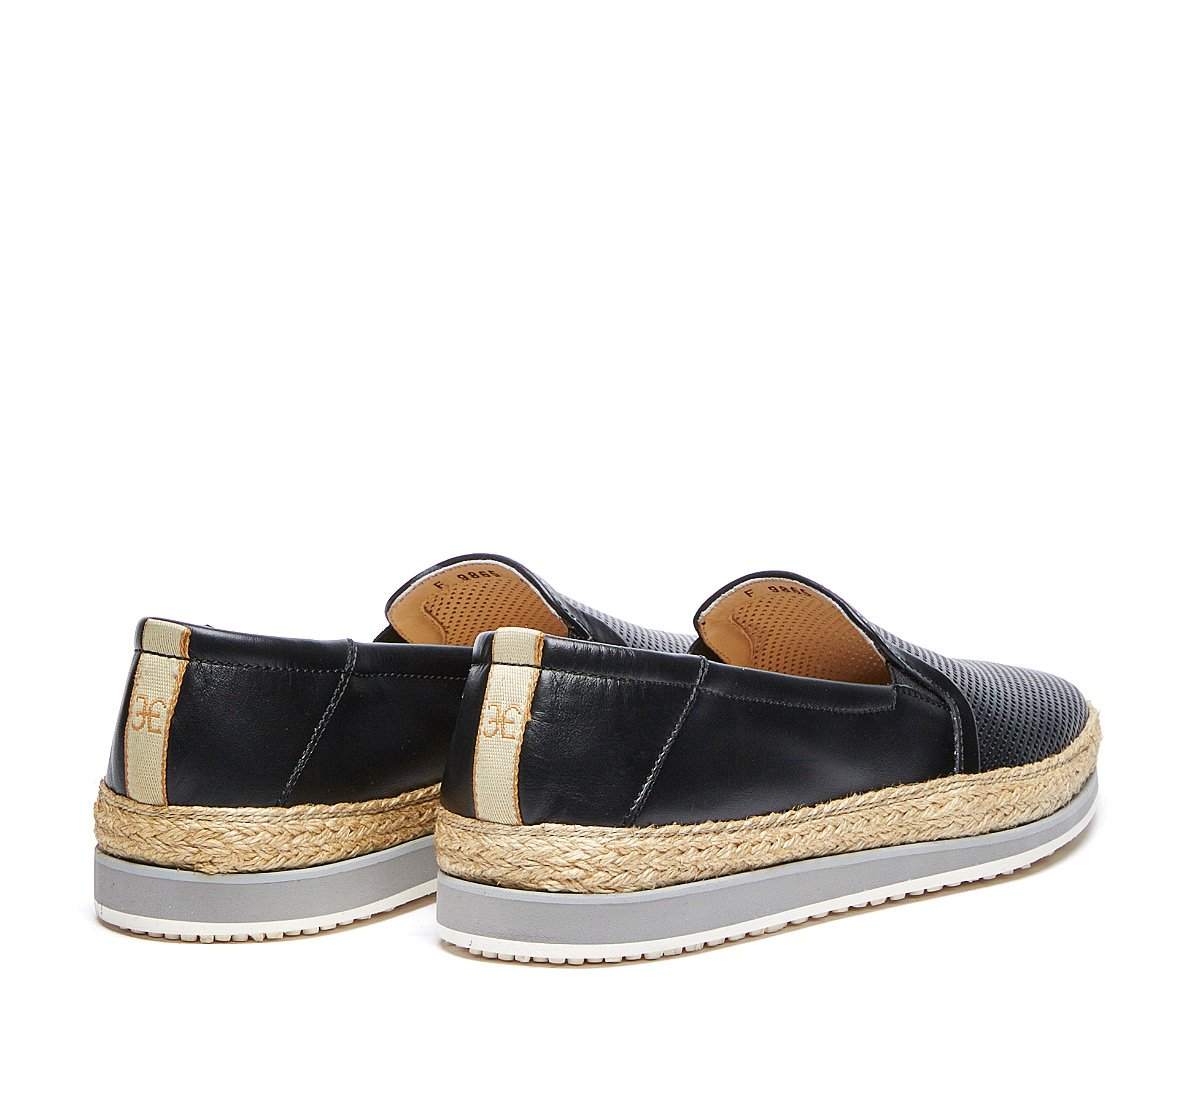 Espadrillas in corda